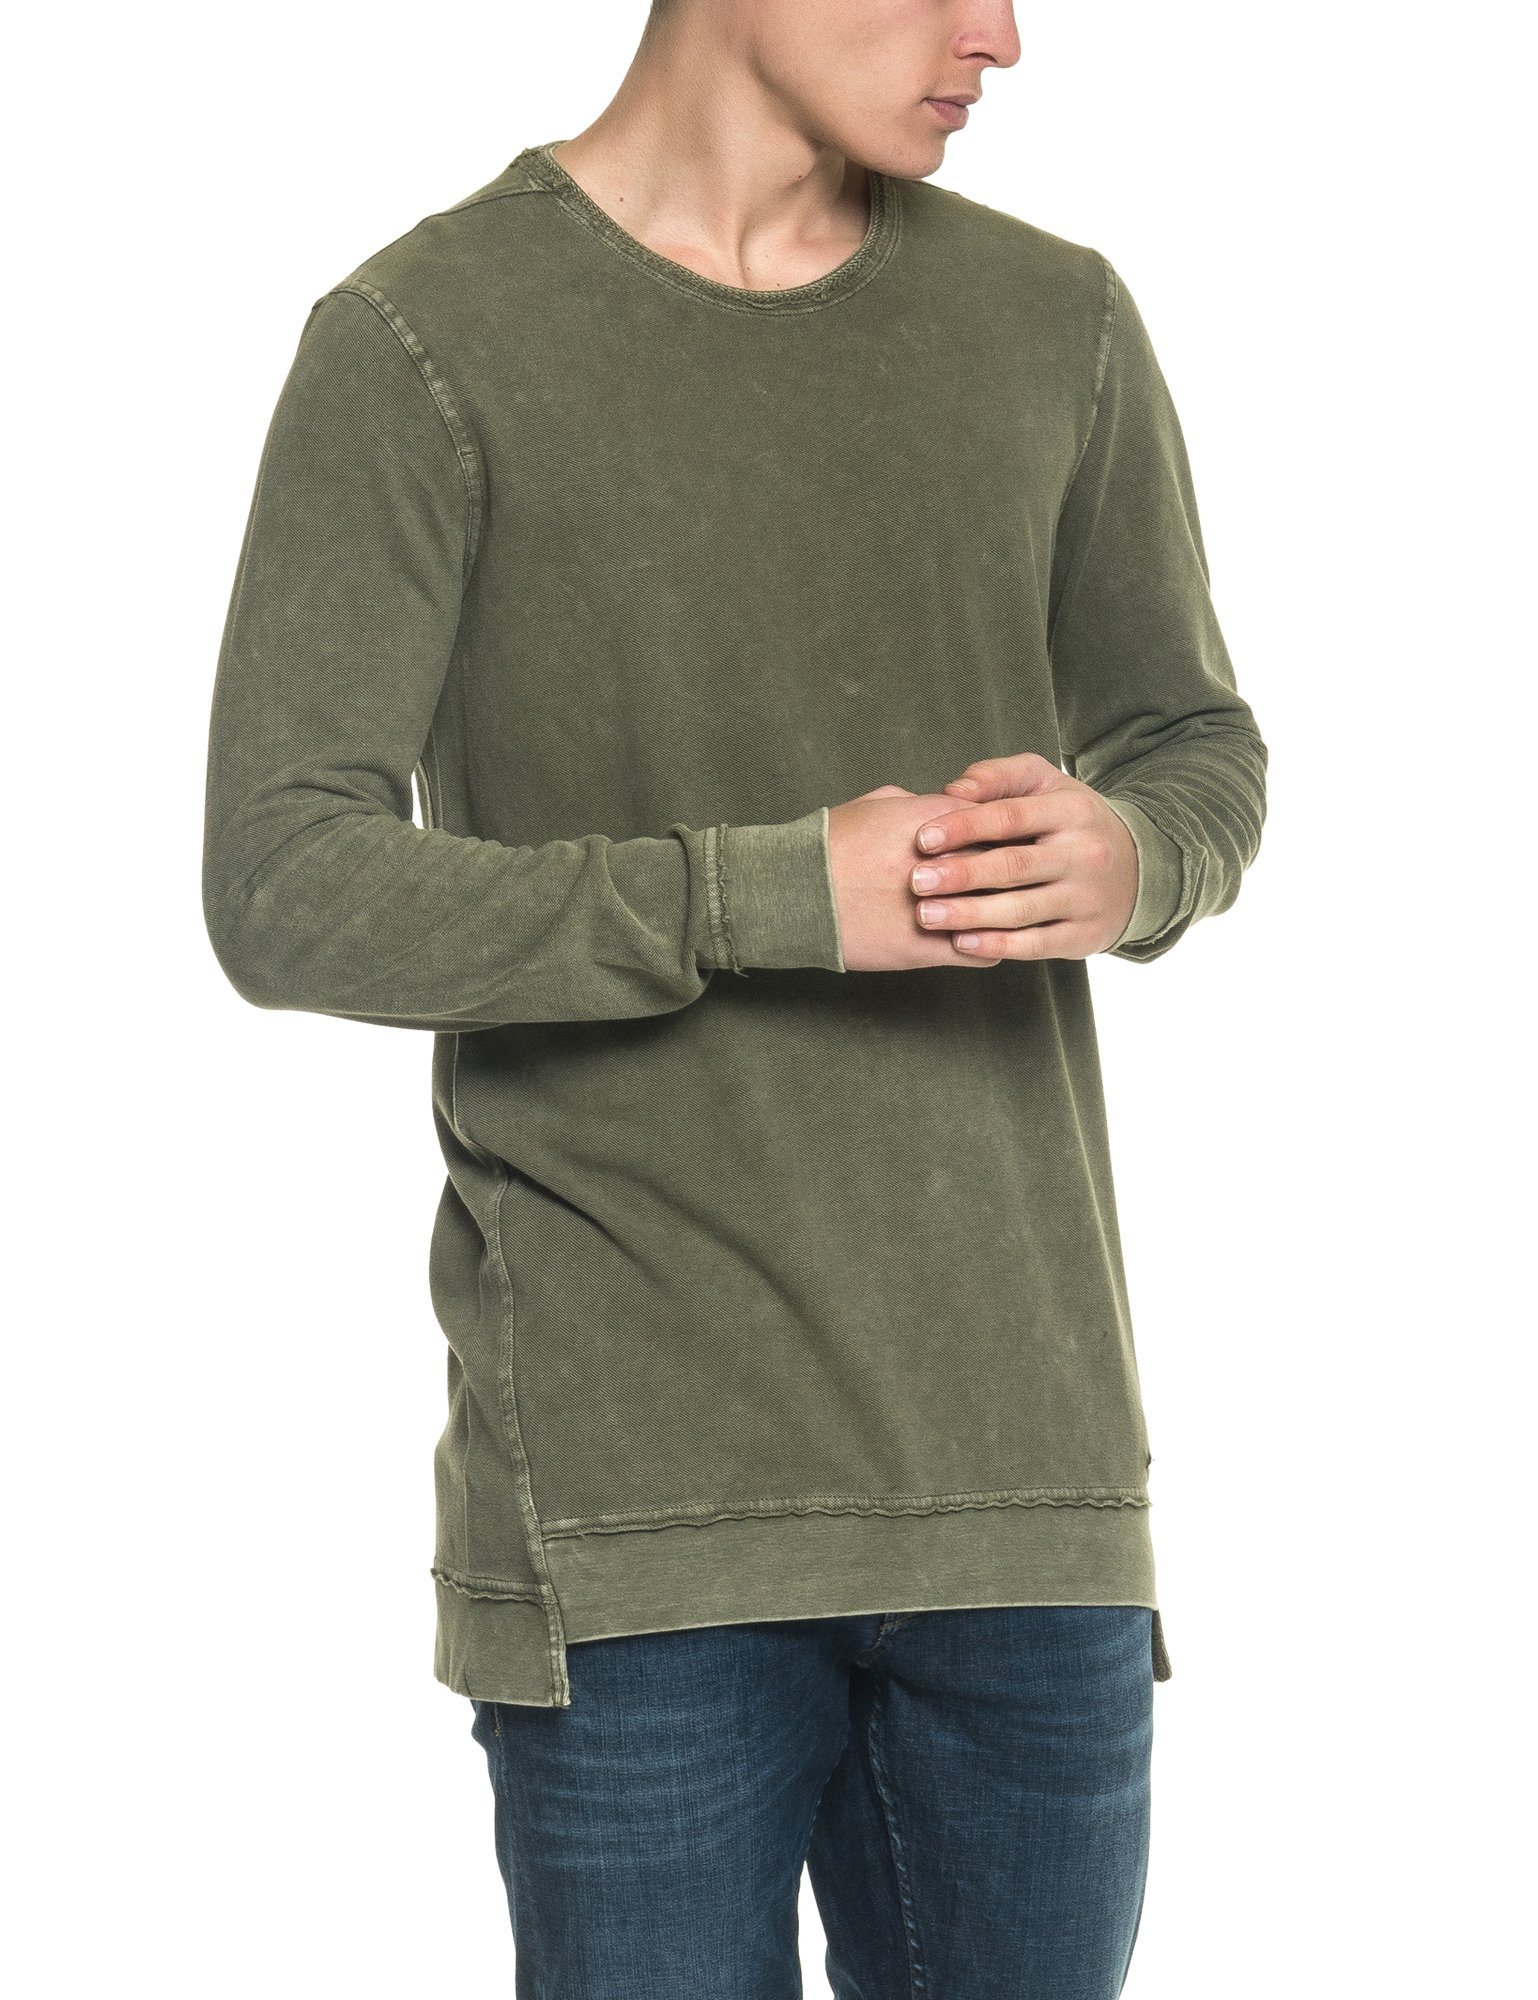 Garcia Jeans Men's Men's Olive Sweatshirt in Size XL Green